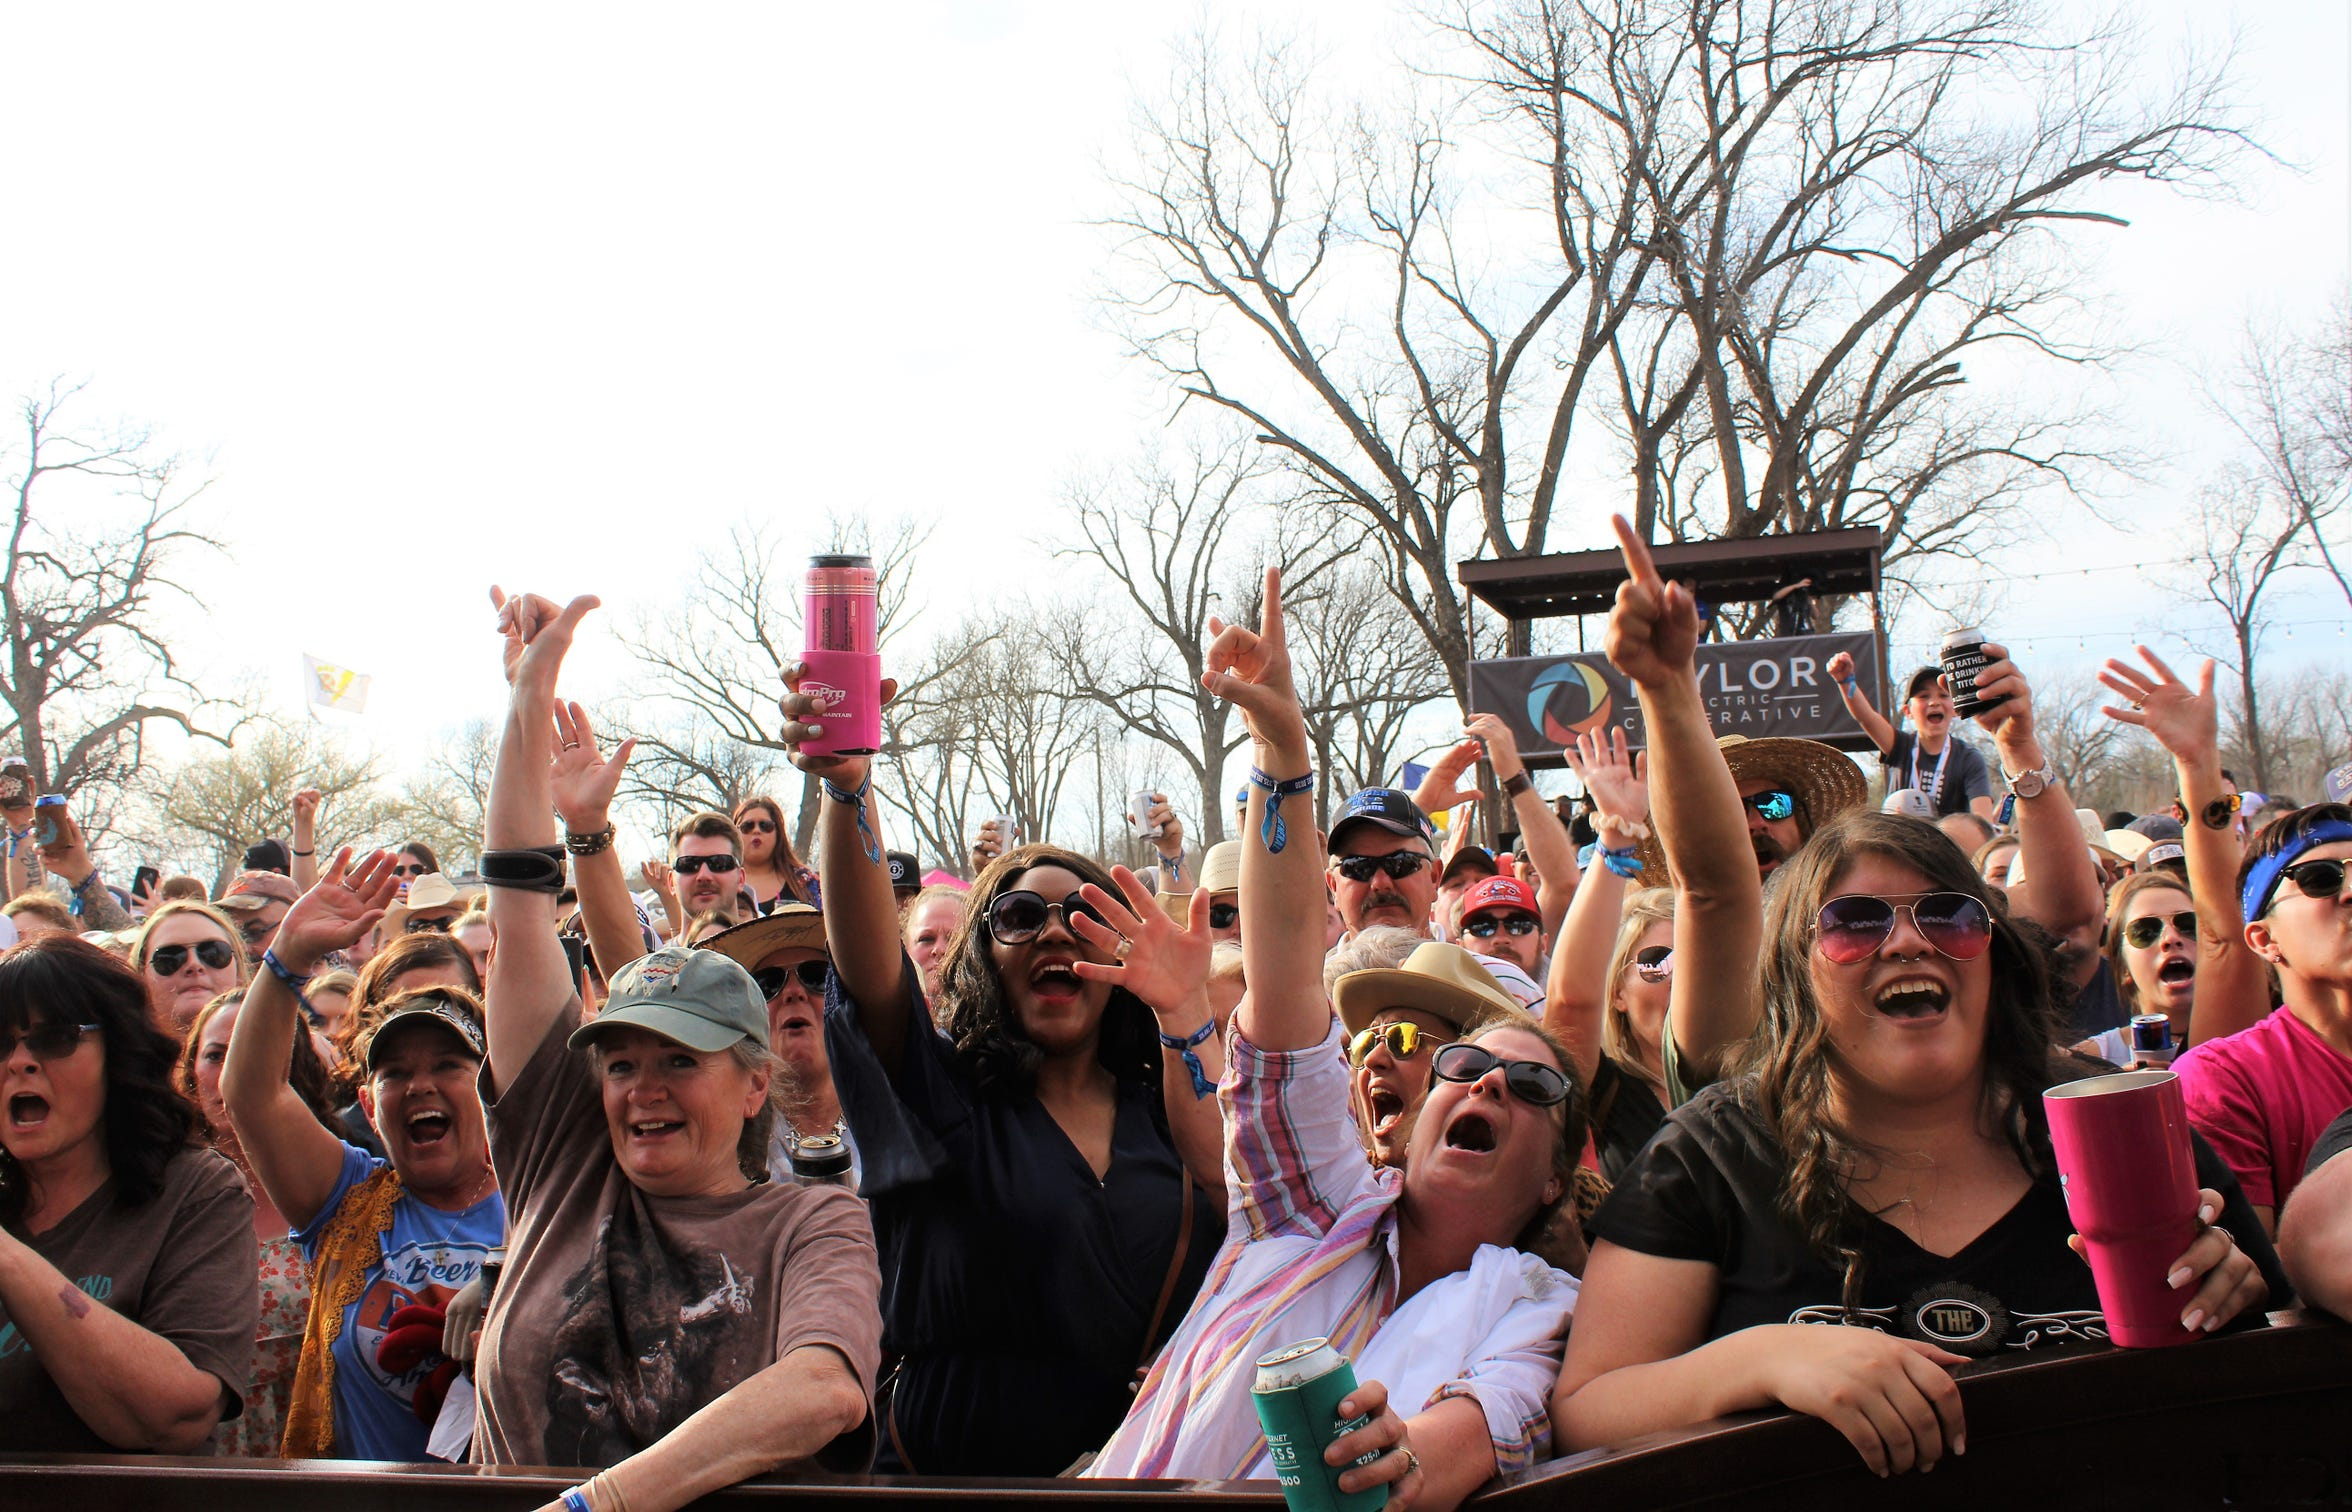 Outlaws attendees raise their hands and cans during Kevin Fowler's performance at the 2019 event. Fowler returns for an evening show this year, promising to play all his beer-drinking favorites.